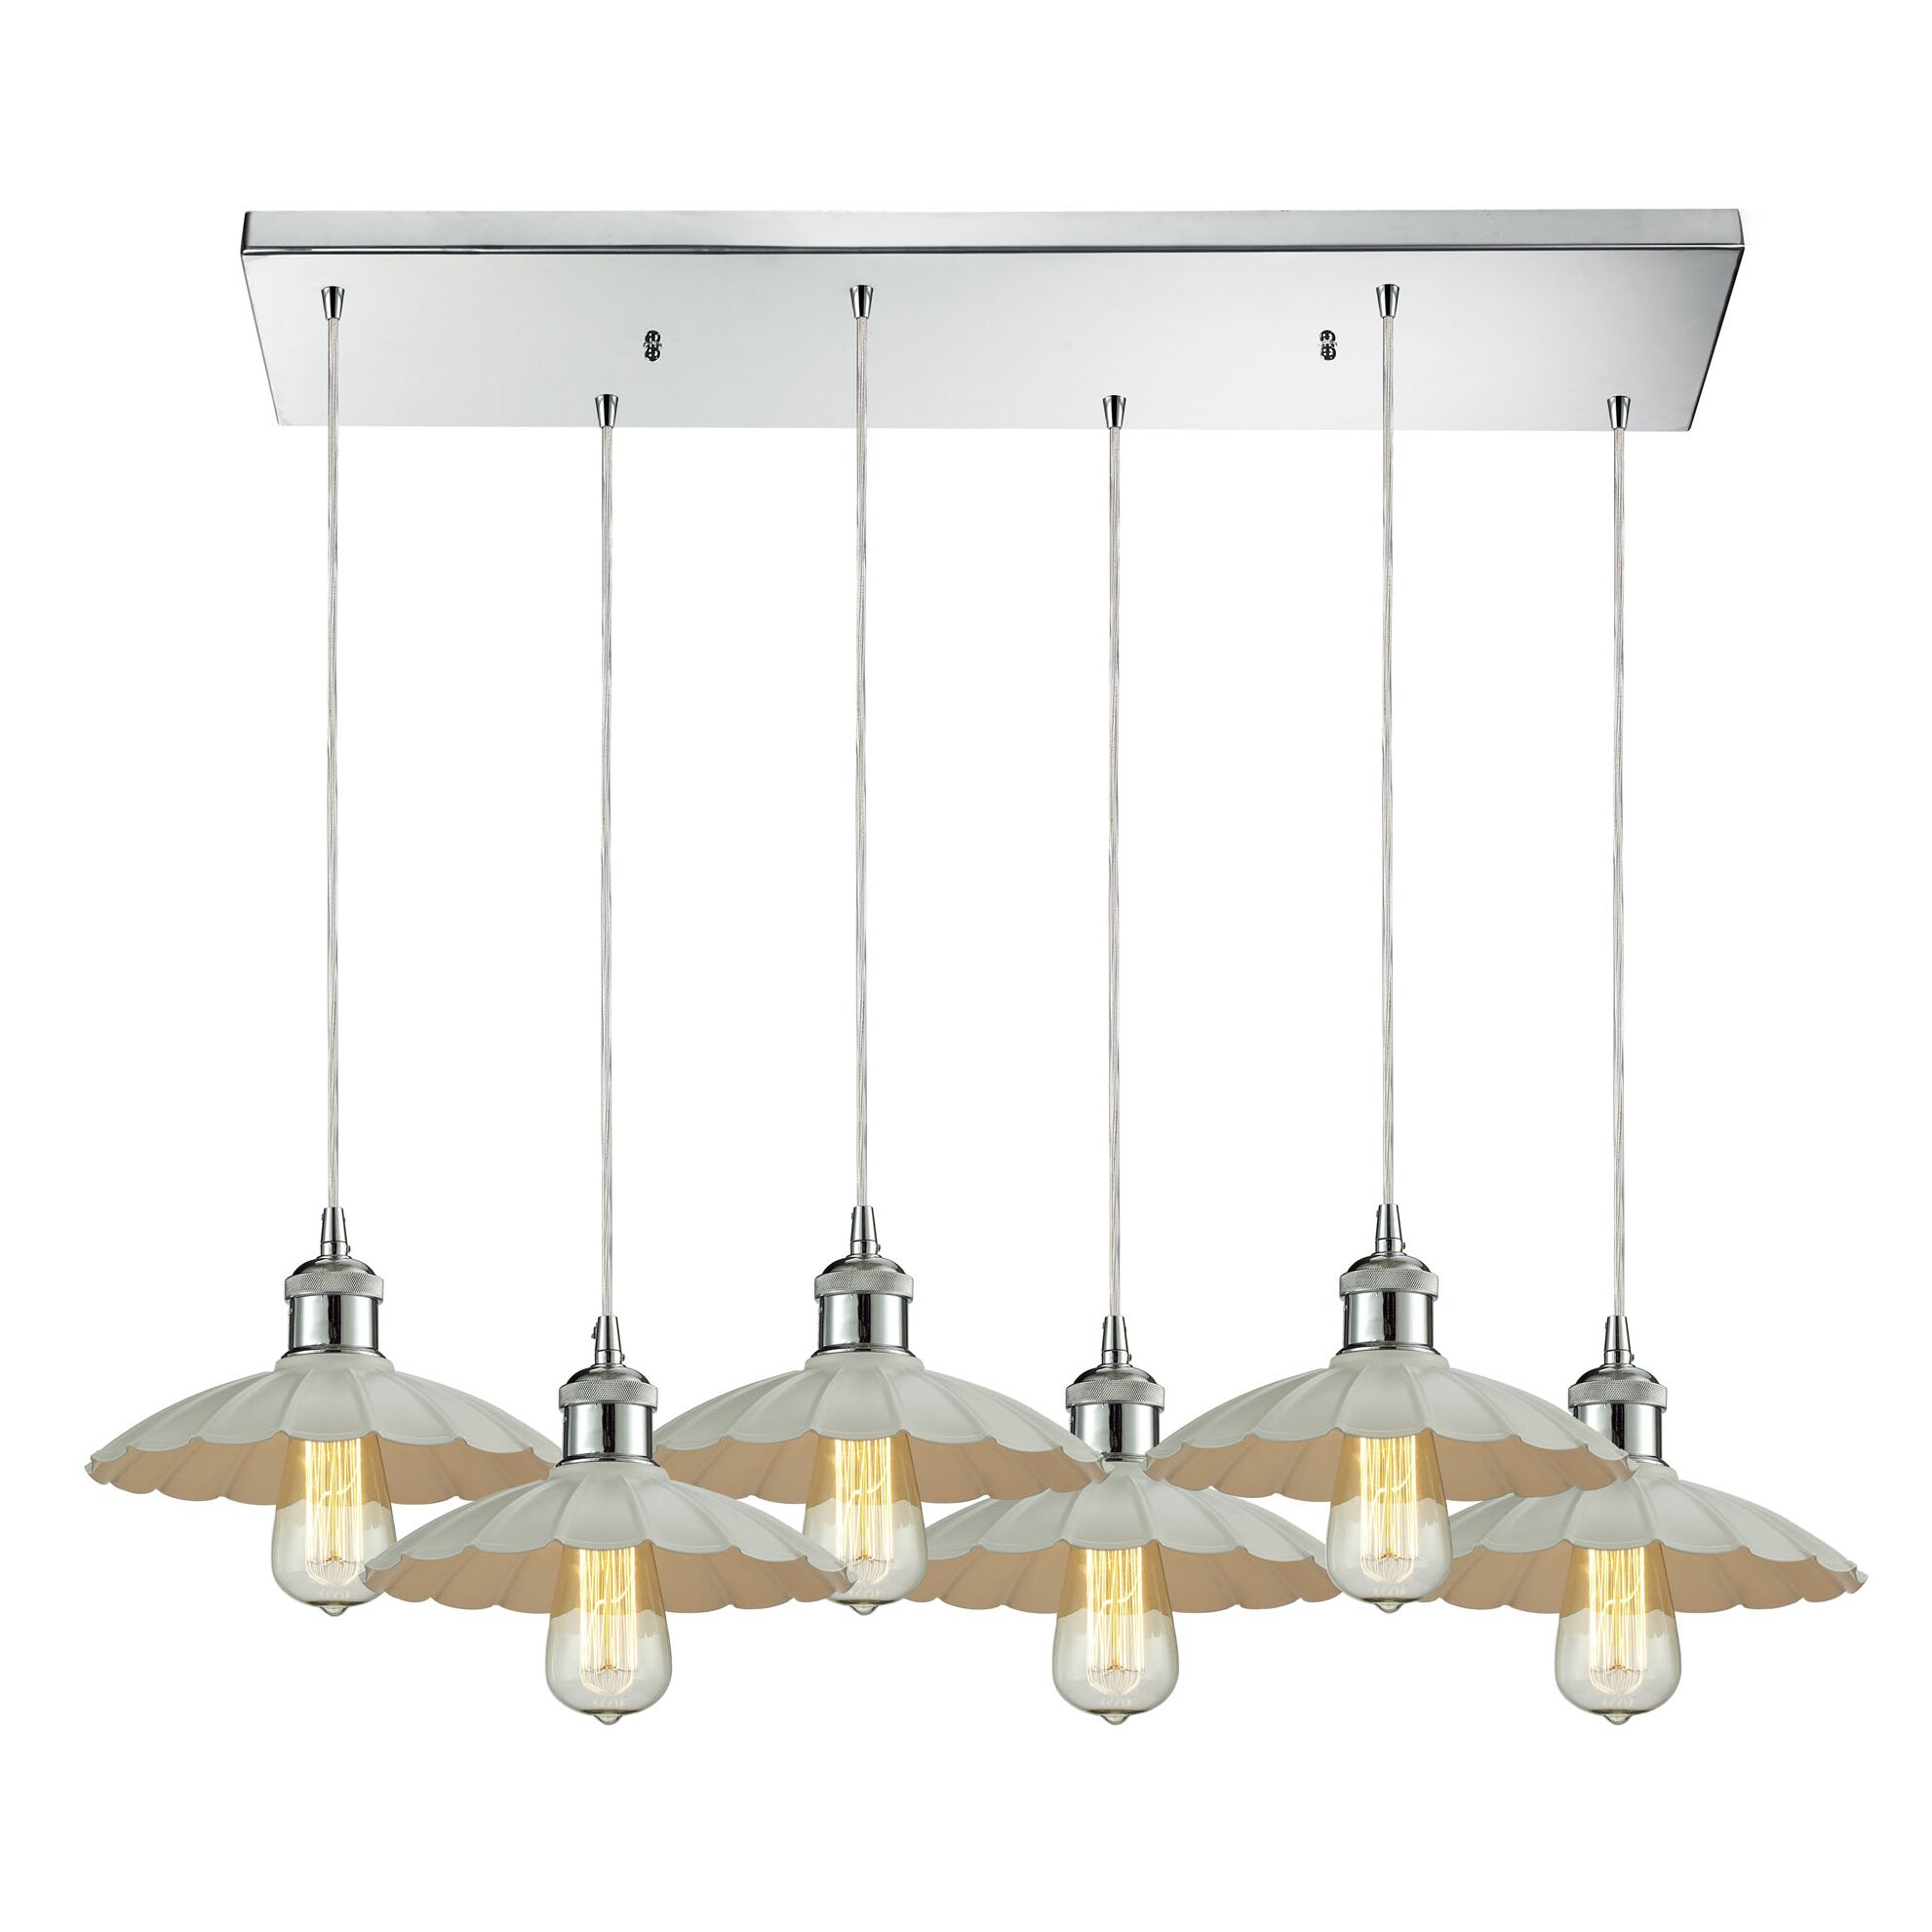 Corrine 6 light kitchen island pendant wayfair for Kitchen island lighting pendants